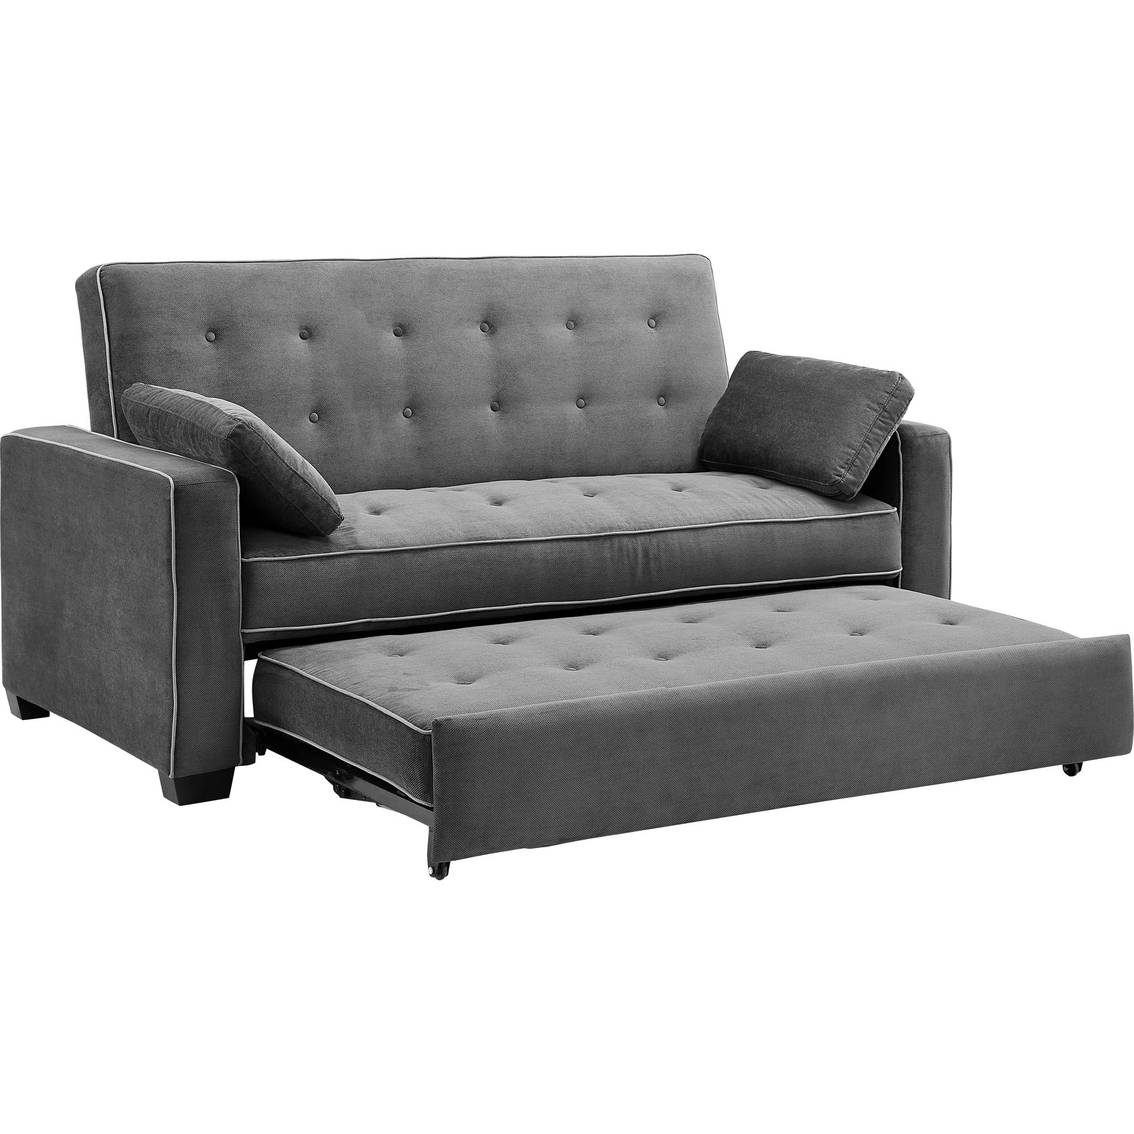 Serta Augustine Convertible Queen-Size Sleeper Sofa | Serta with Convertible Queen Sofas (Image 9 of 15)